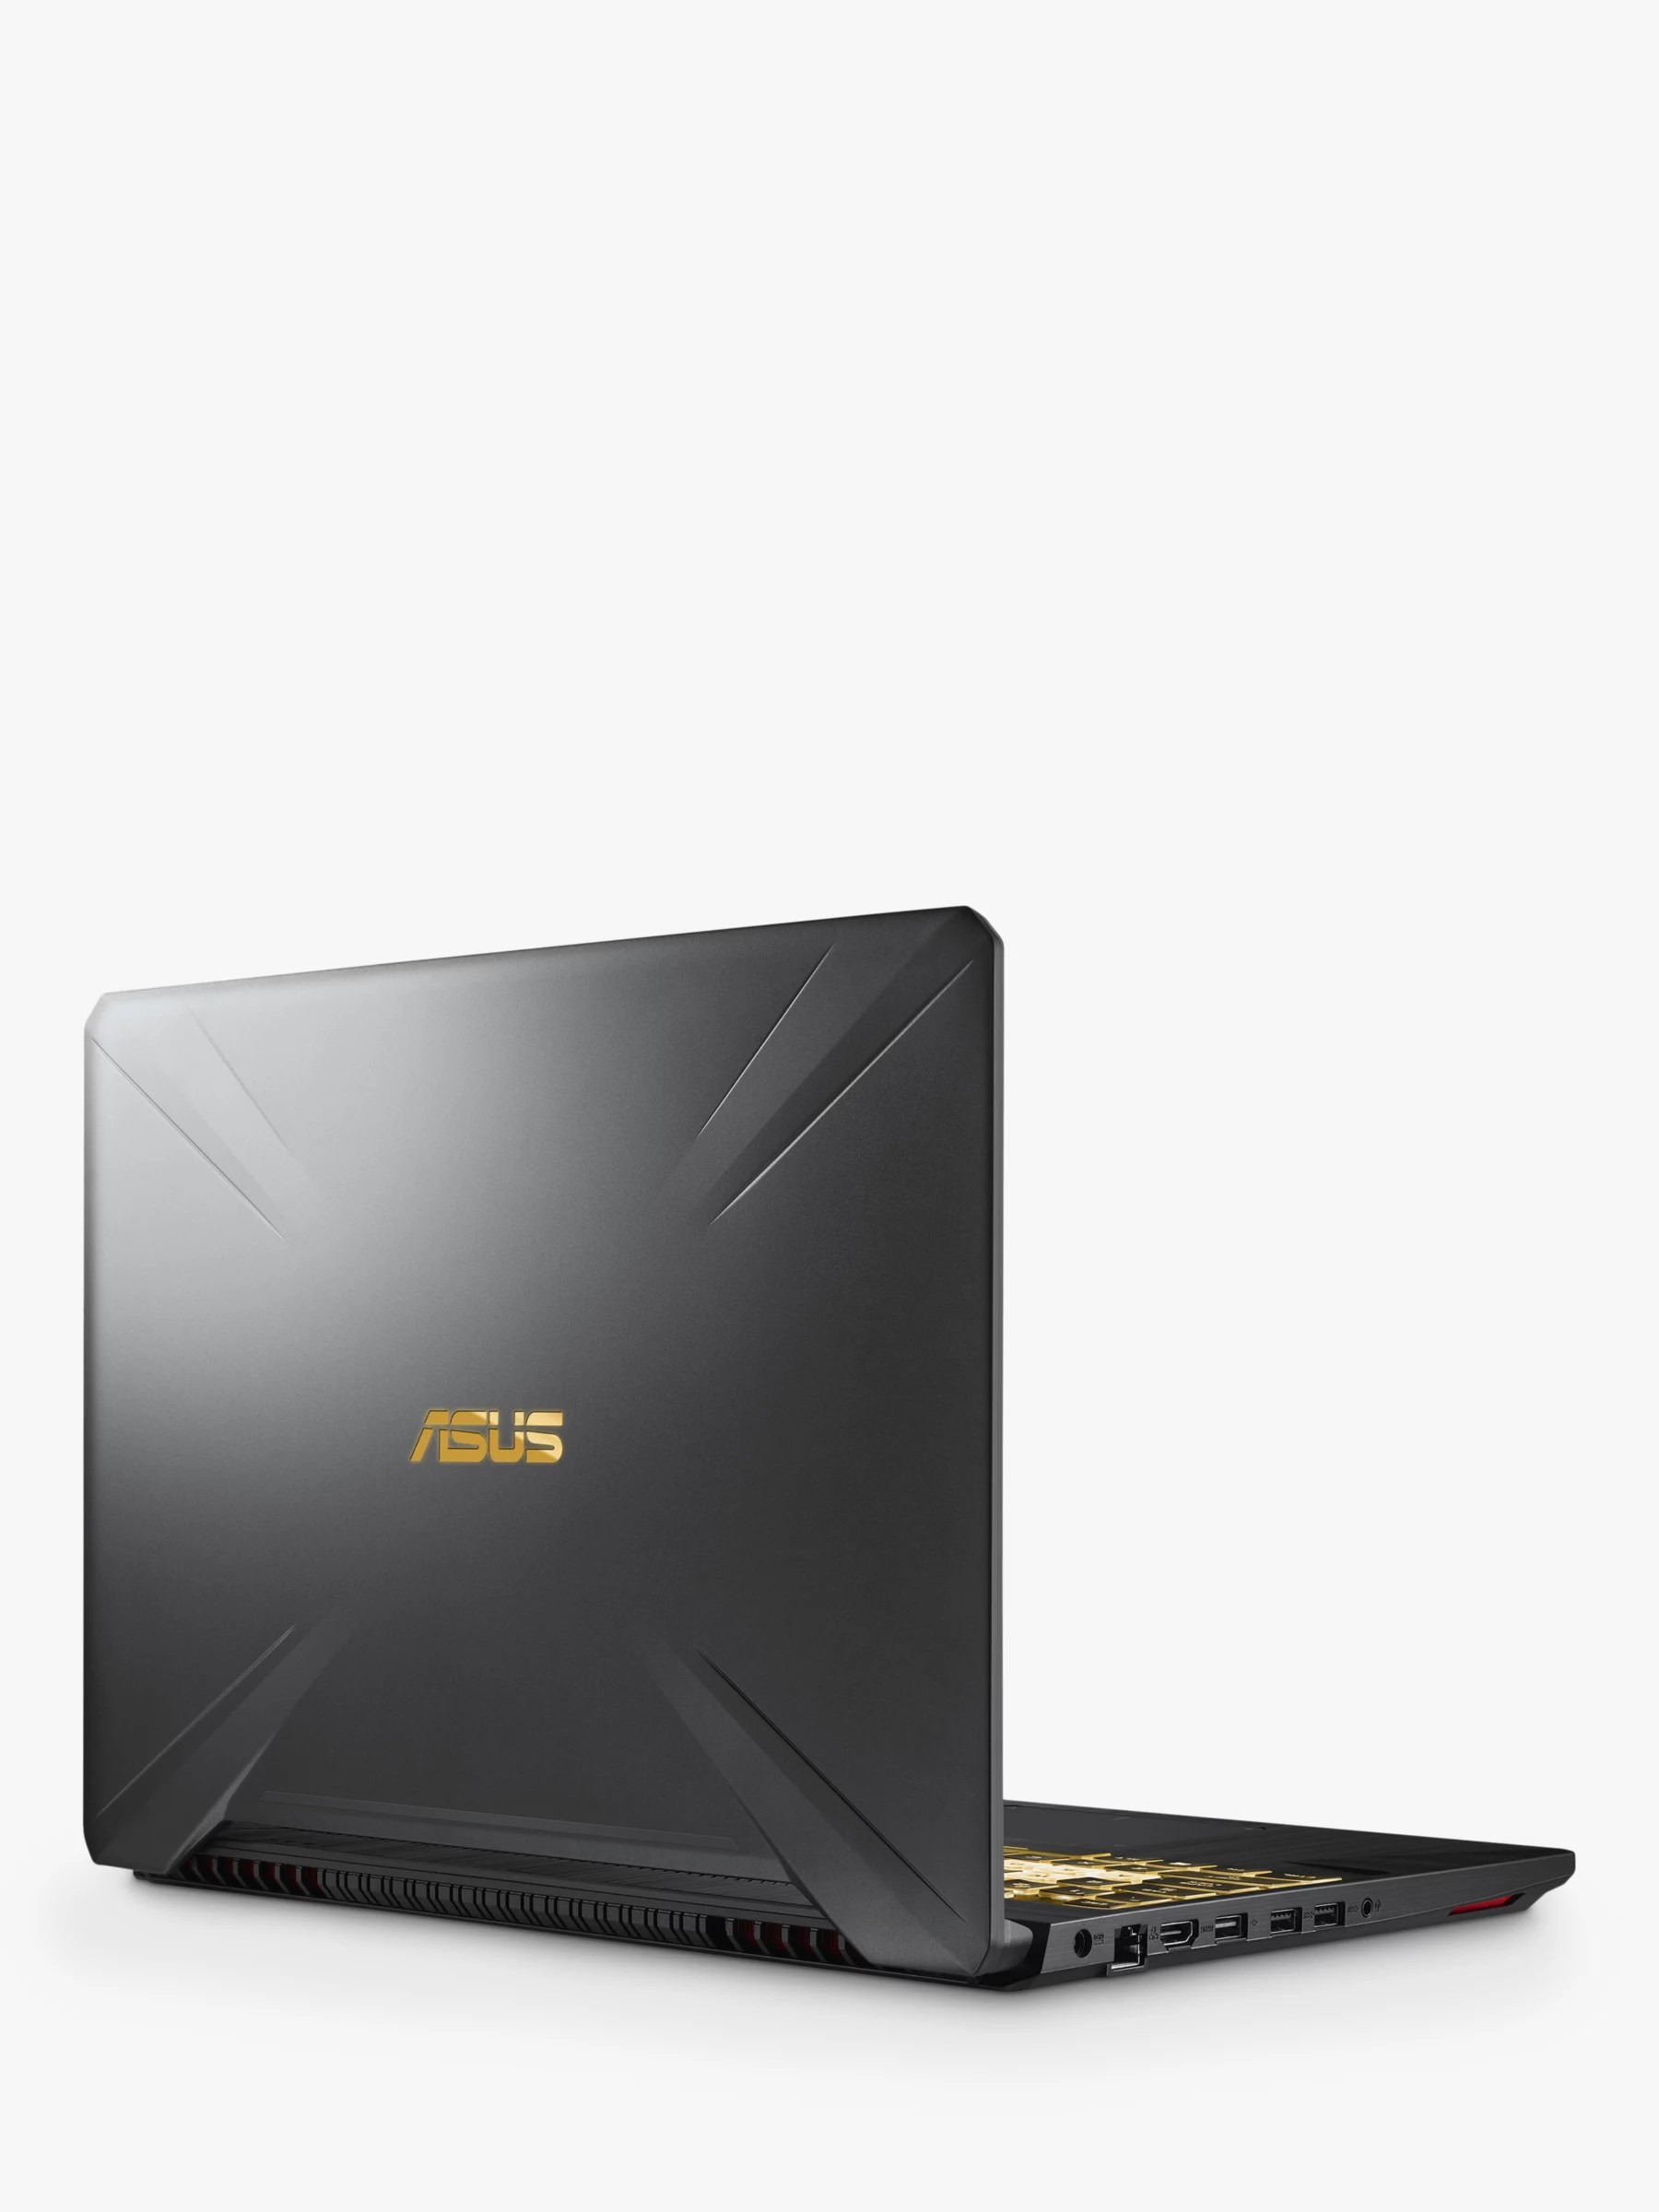 Laptop Gaming Murah 4 Jutaan : laptop, gaming, murah, jutaan, Gaming, Laptop, Ryzen